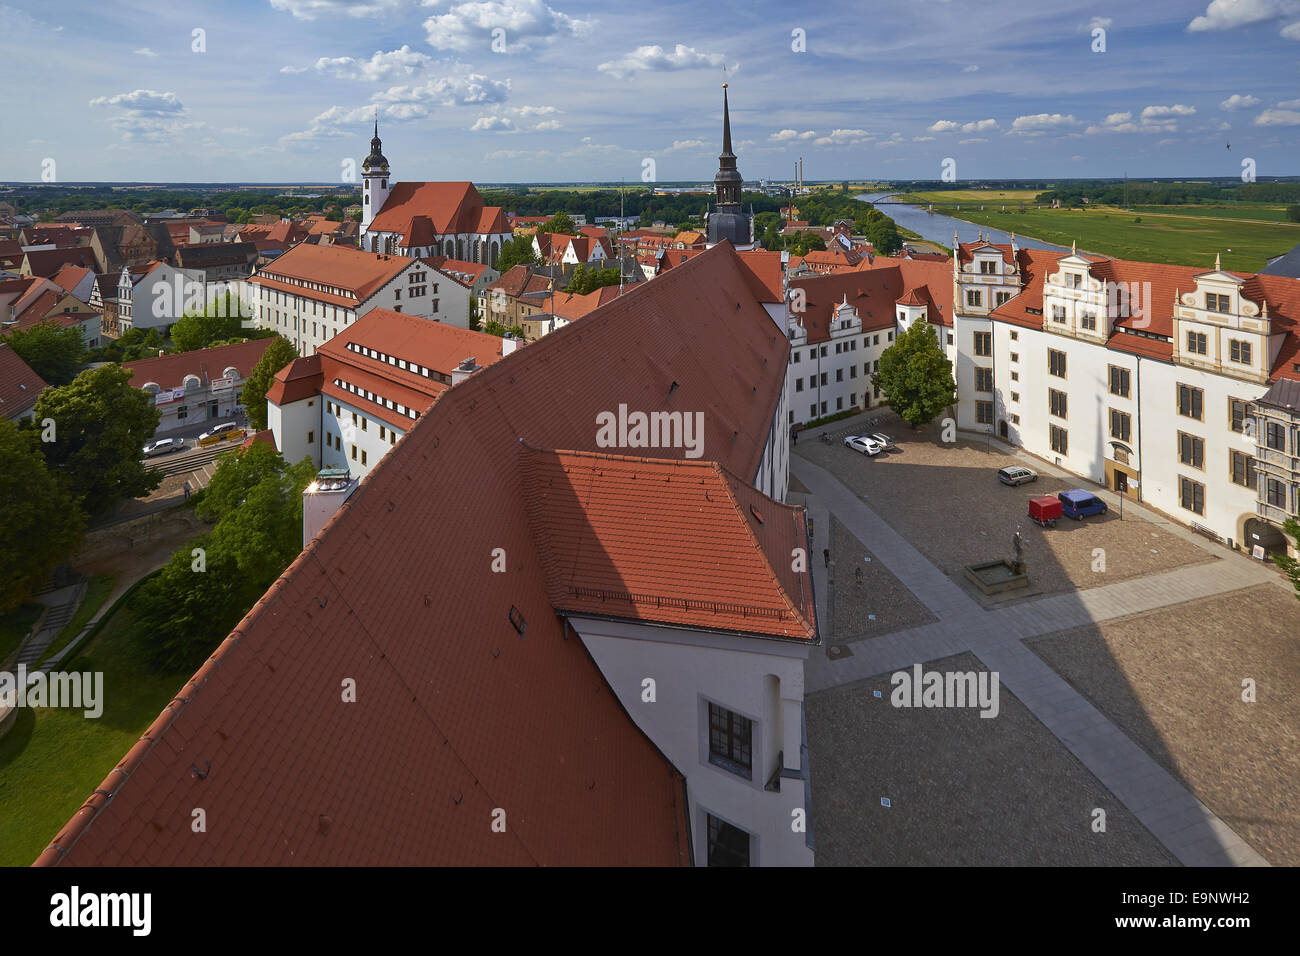 Castle Hartenfels with St. Mary's Church in Torgau, Germany Stock Photo